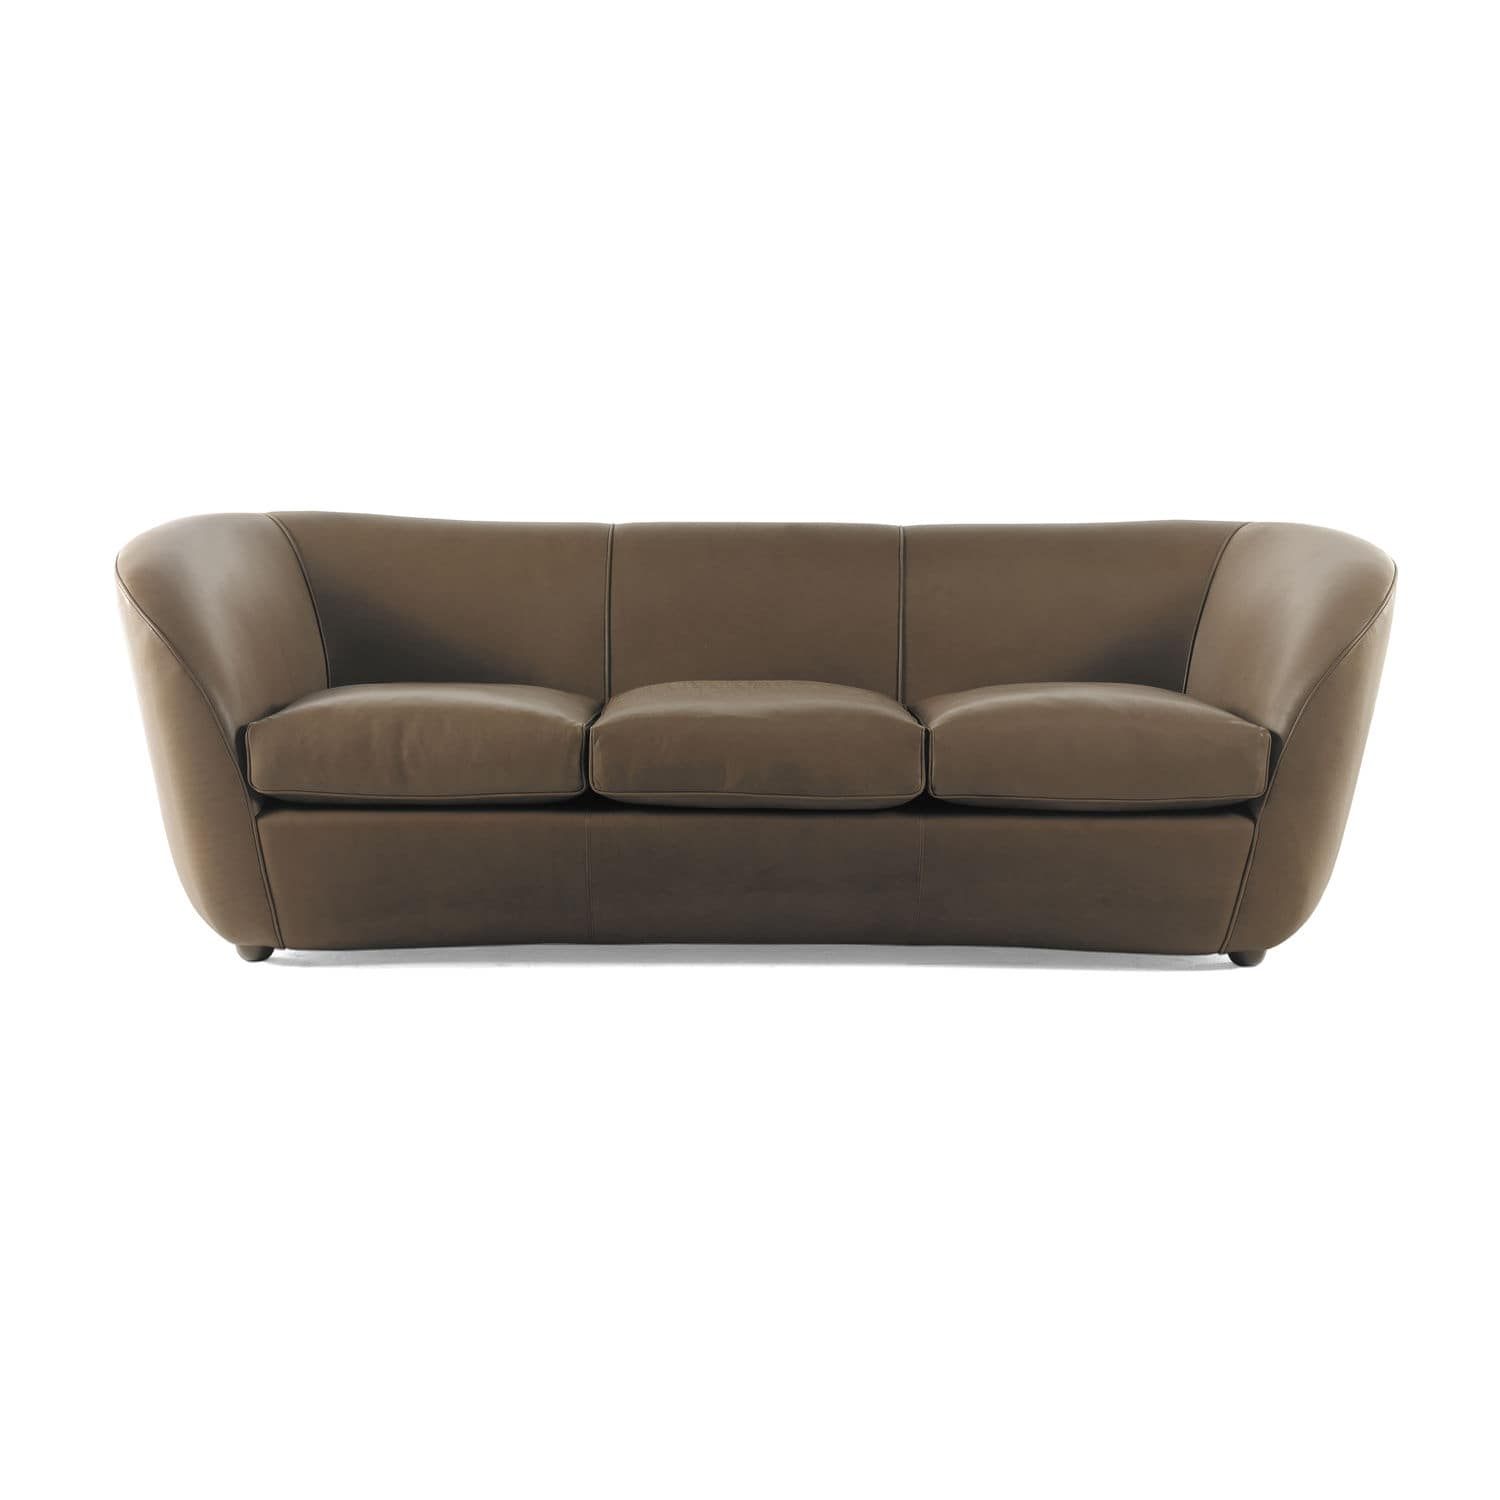 Contemporary sofa velvet leather 2 seater BORBONESE SUITE